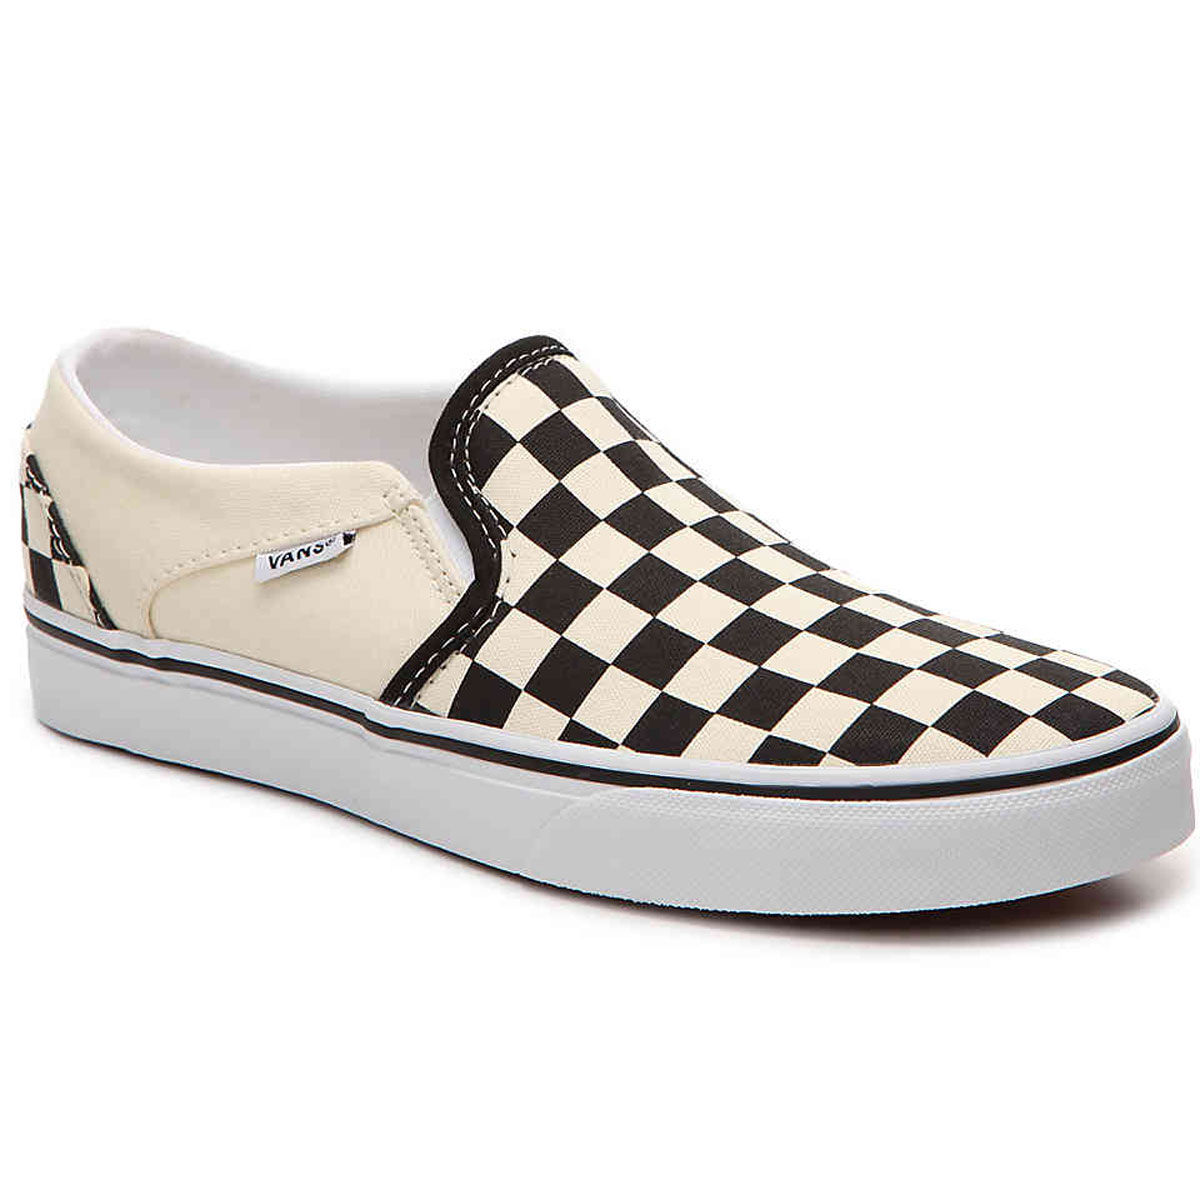 Vans Asher Checkered Slip On Womens Casual Shoe